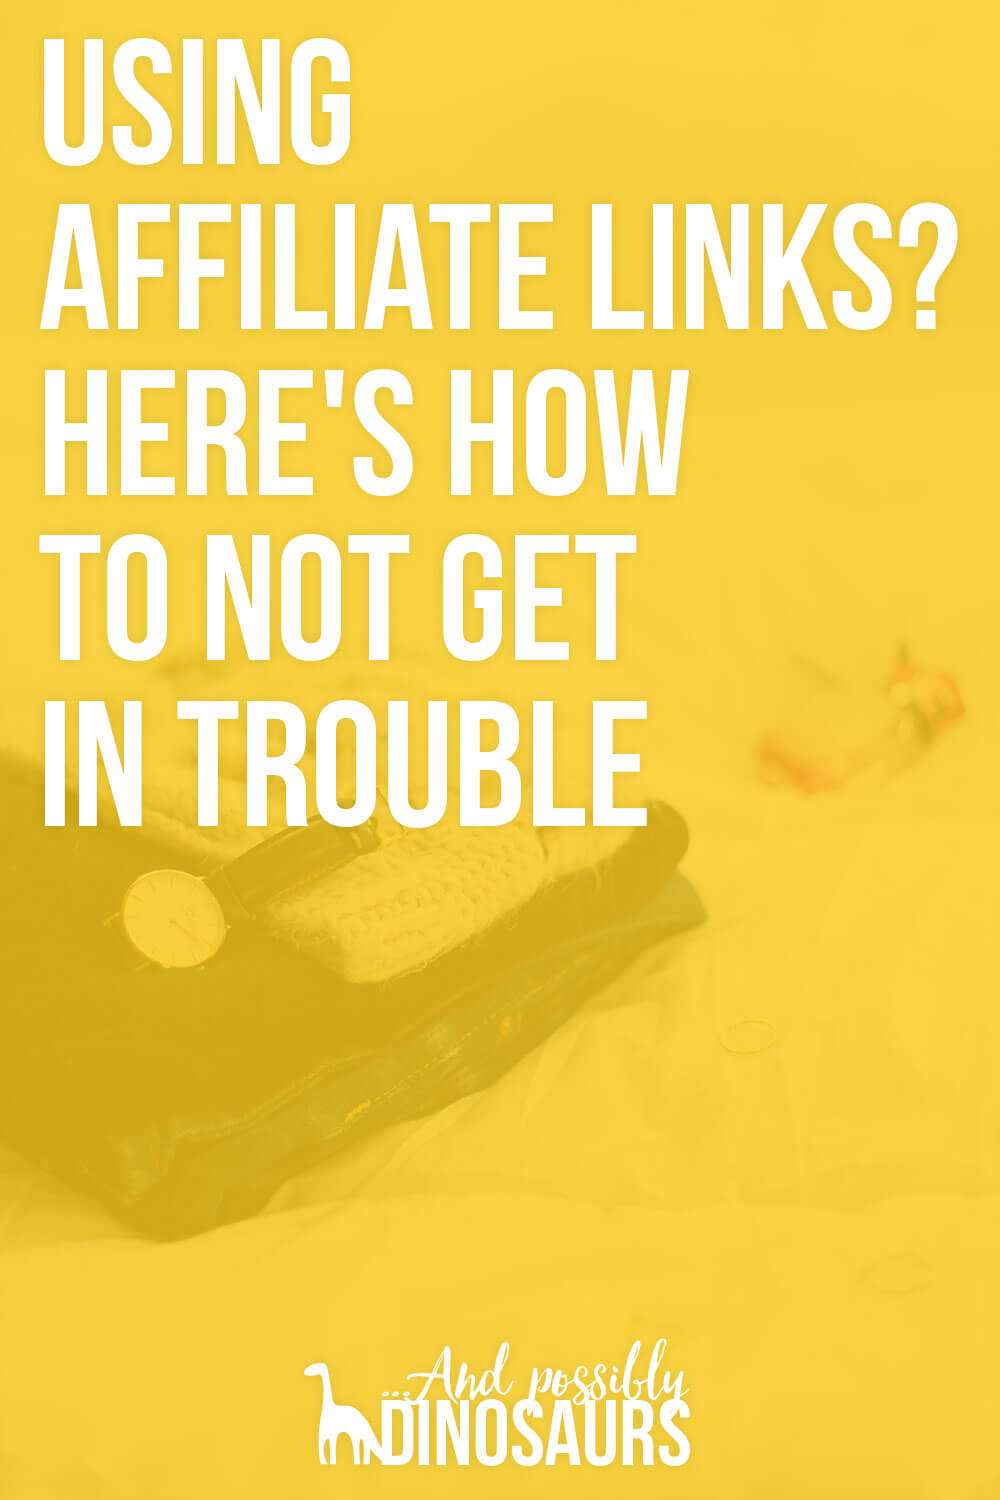 Using affiliate links is an awesome way to make money from your blog. But there are some rules to know before you use them. Here's how to use affiliate links on your blog without getting in trouble!